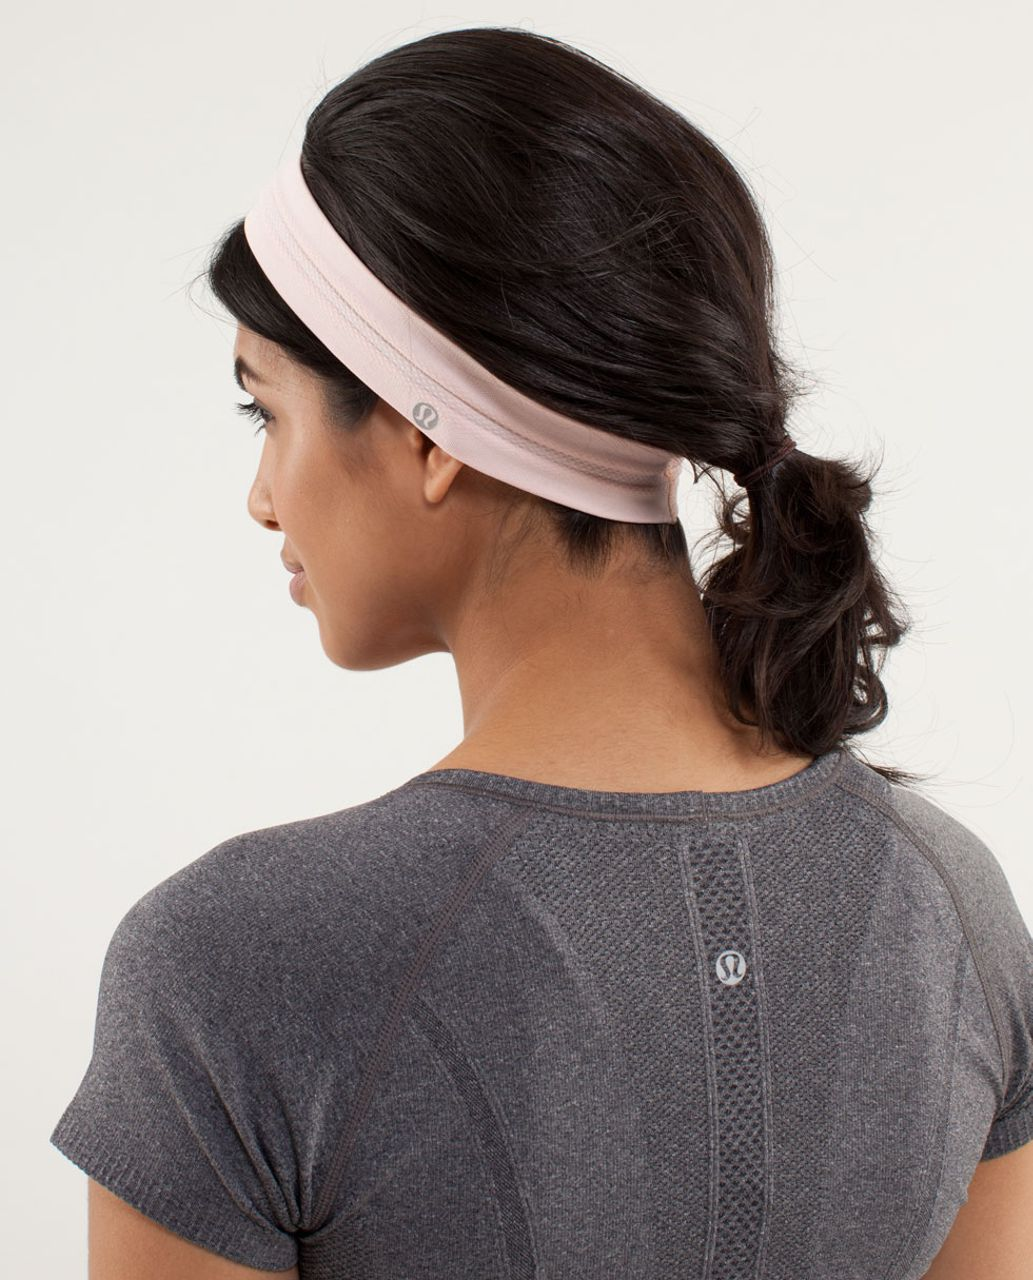 Lululemon Swiftly Headband - Parfait Pink